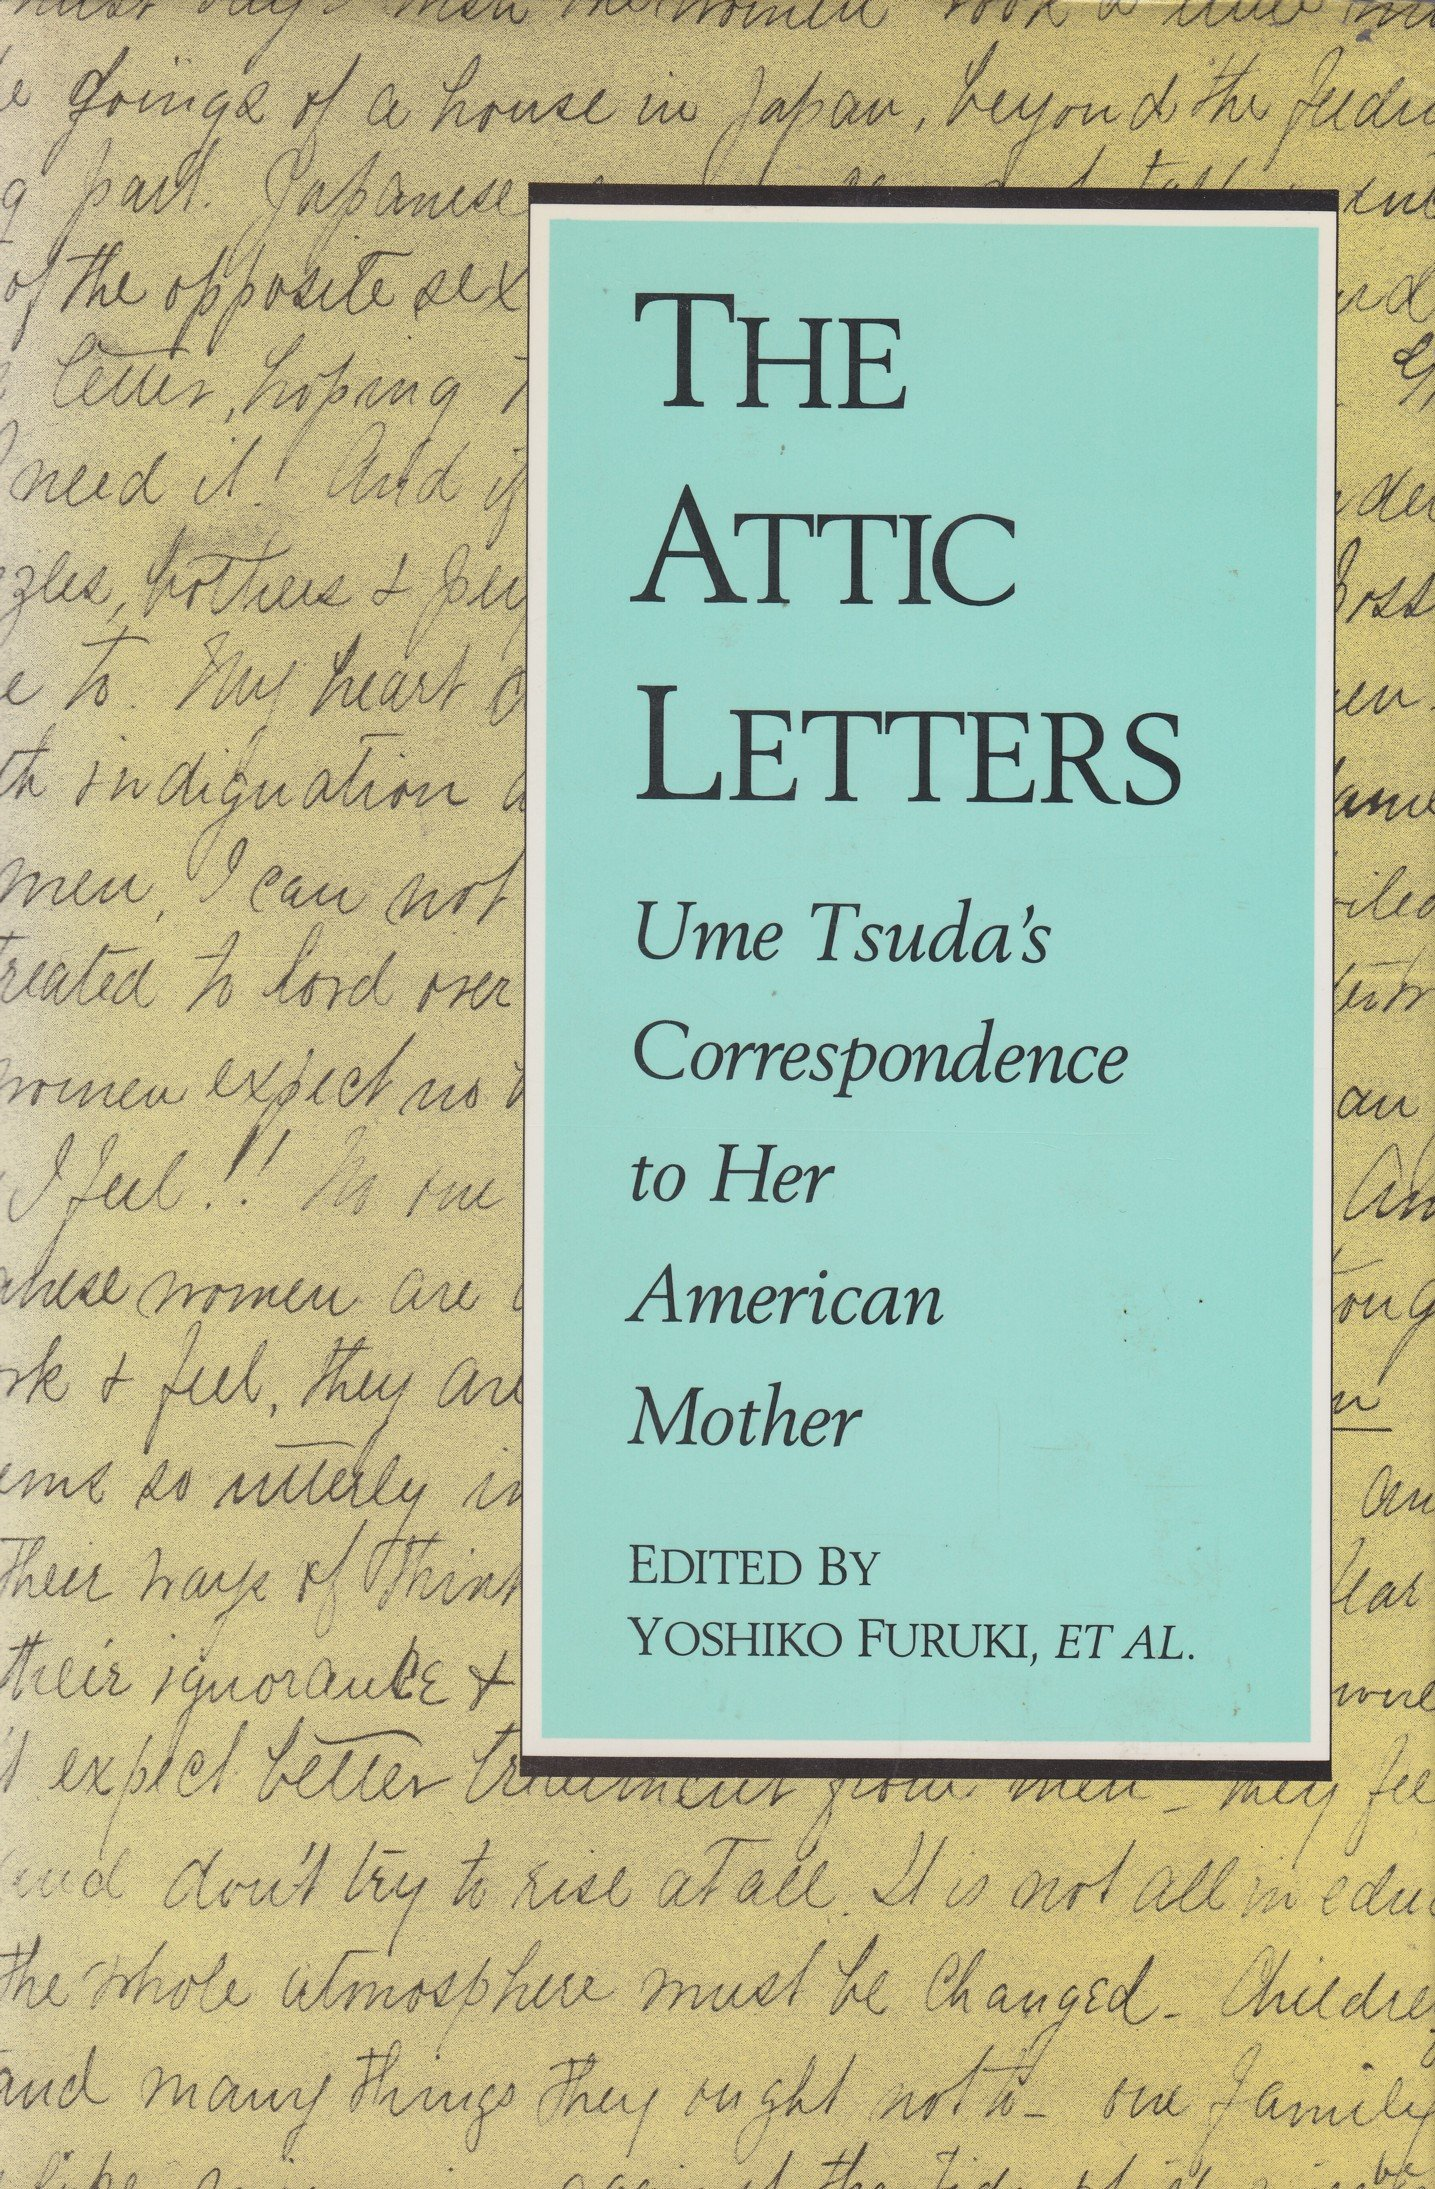 The Attic Letters: Ume Tsuda's Correspondence to Her American Mother